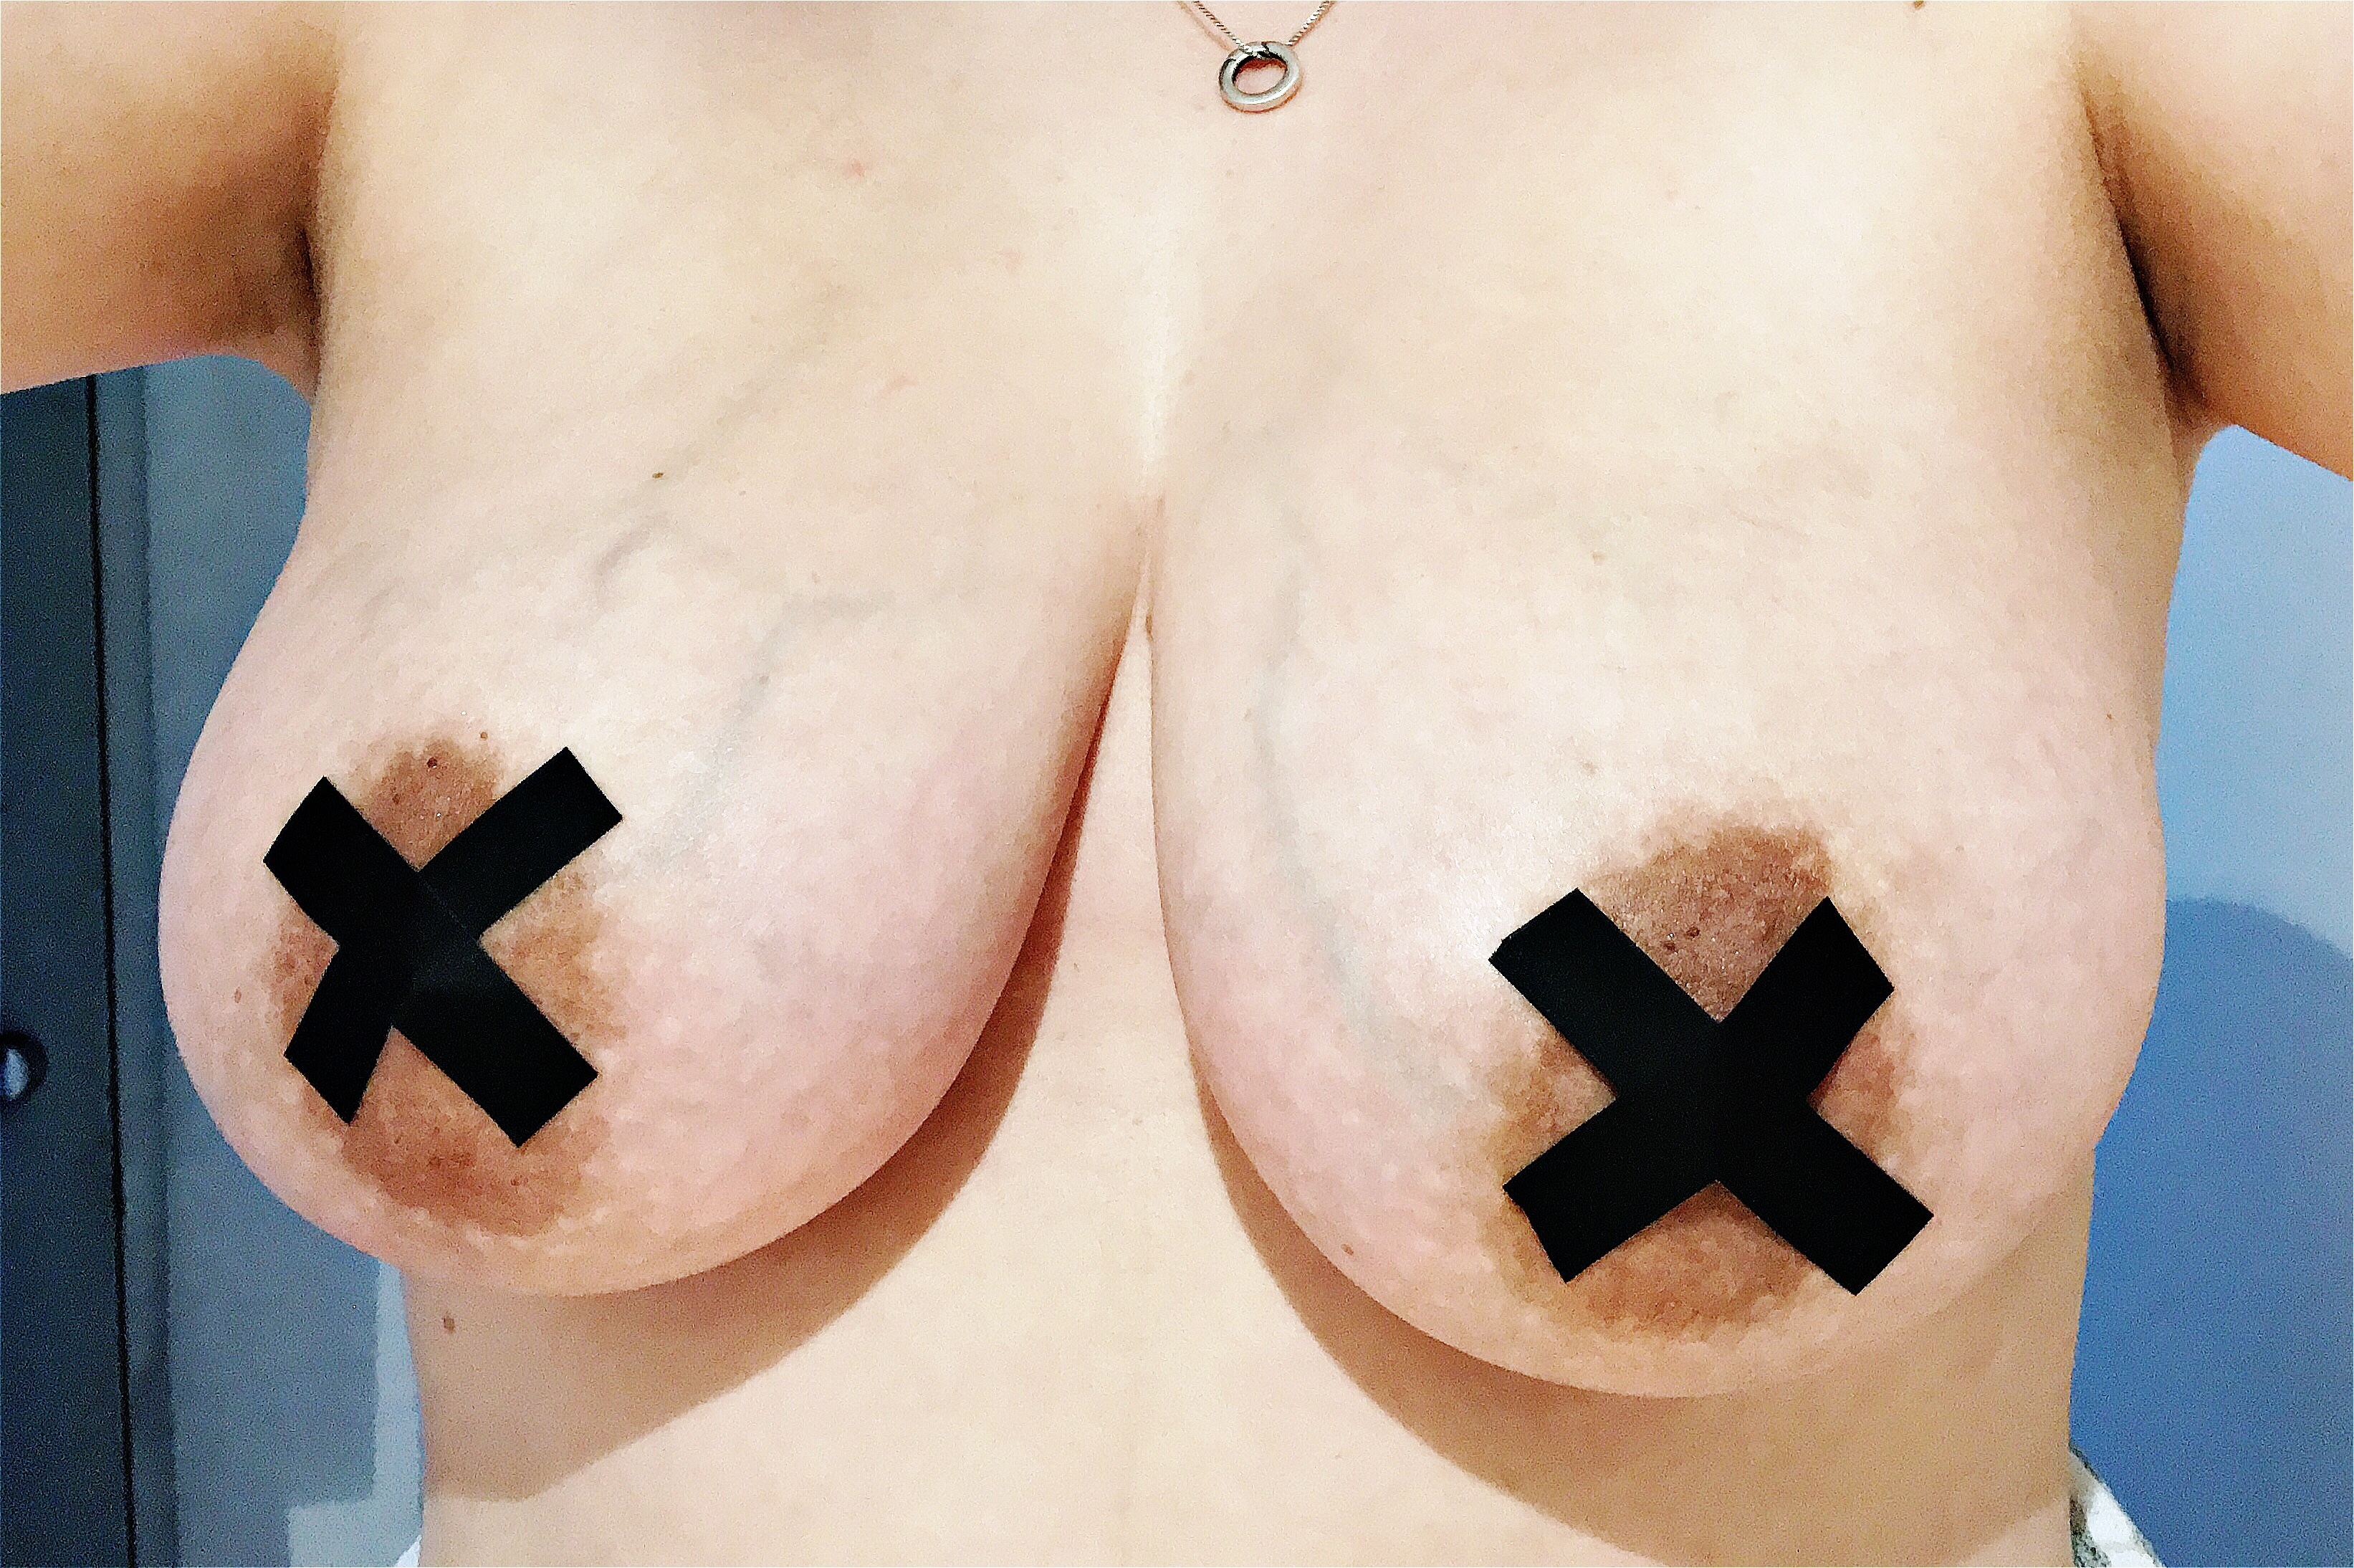 A photo of my breasts with a black 'X' taped over my nipples